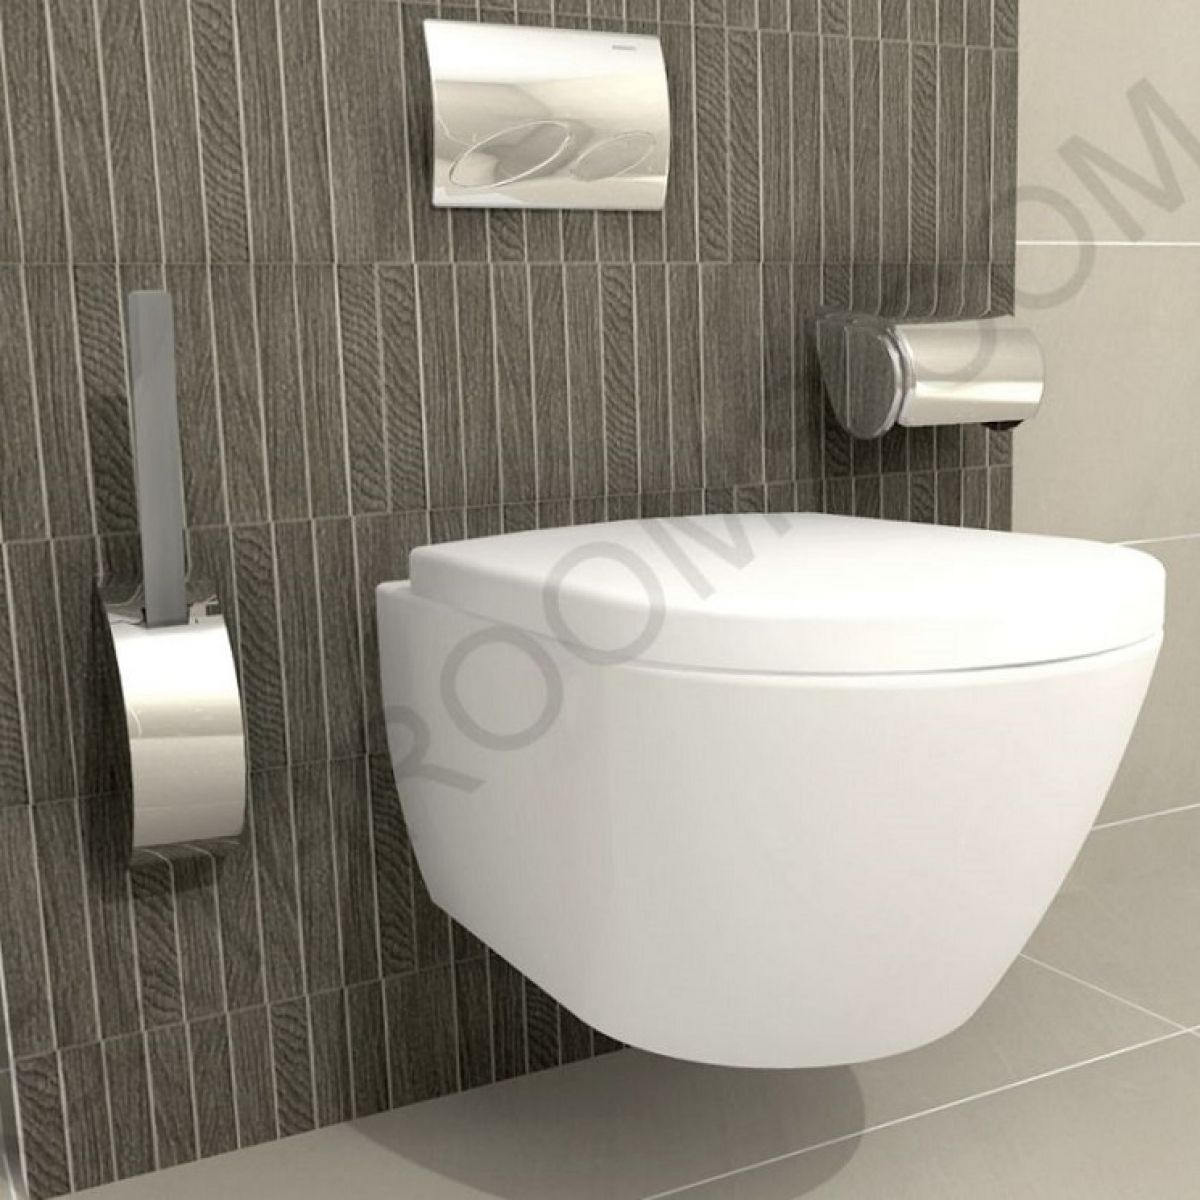 Laufen Pro Geberit Complete Wall Hung Toilet Pack UK Bathrooms